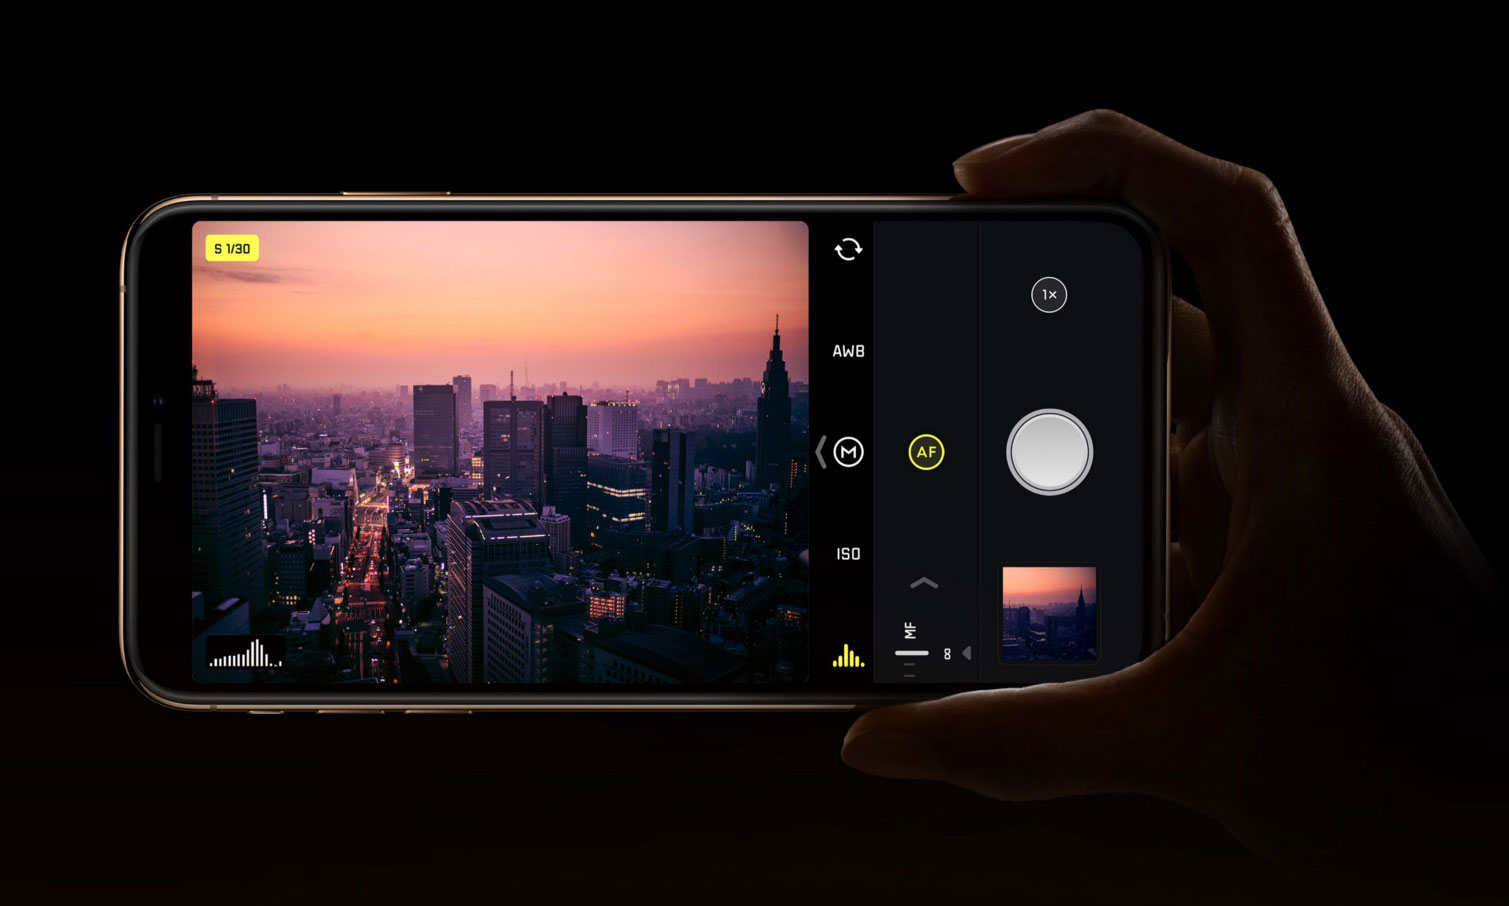 Camera app developer says there's no 'beauty filter' being